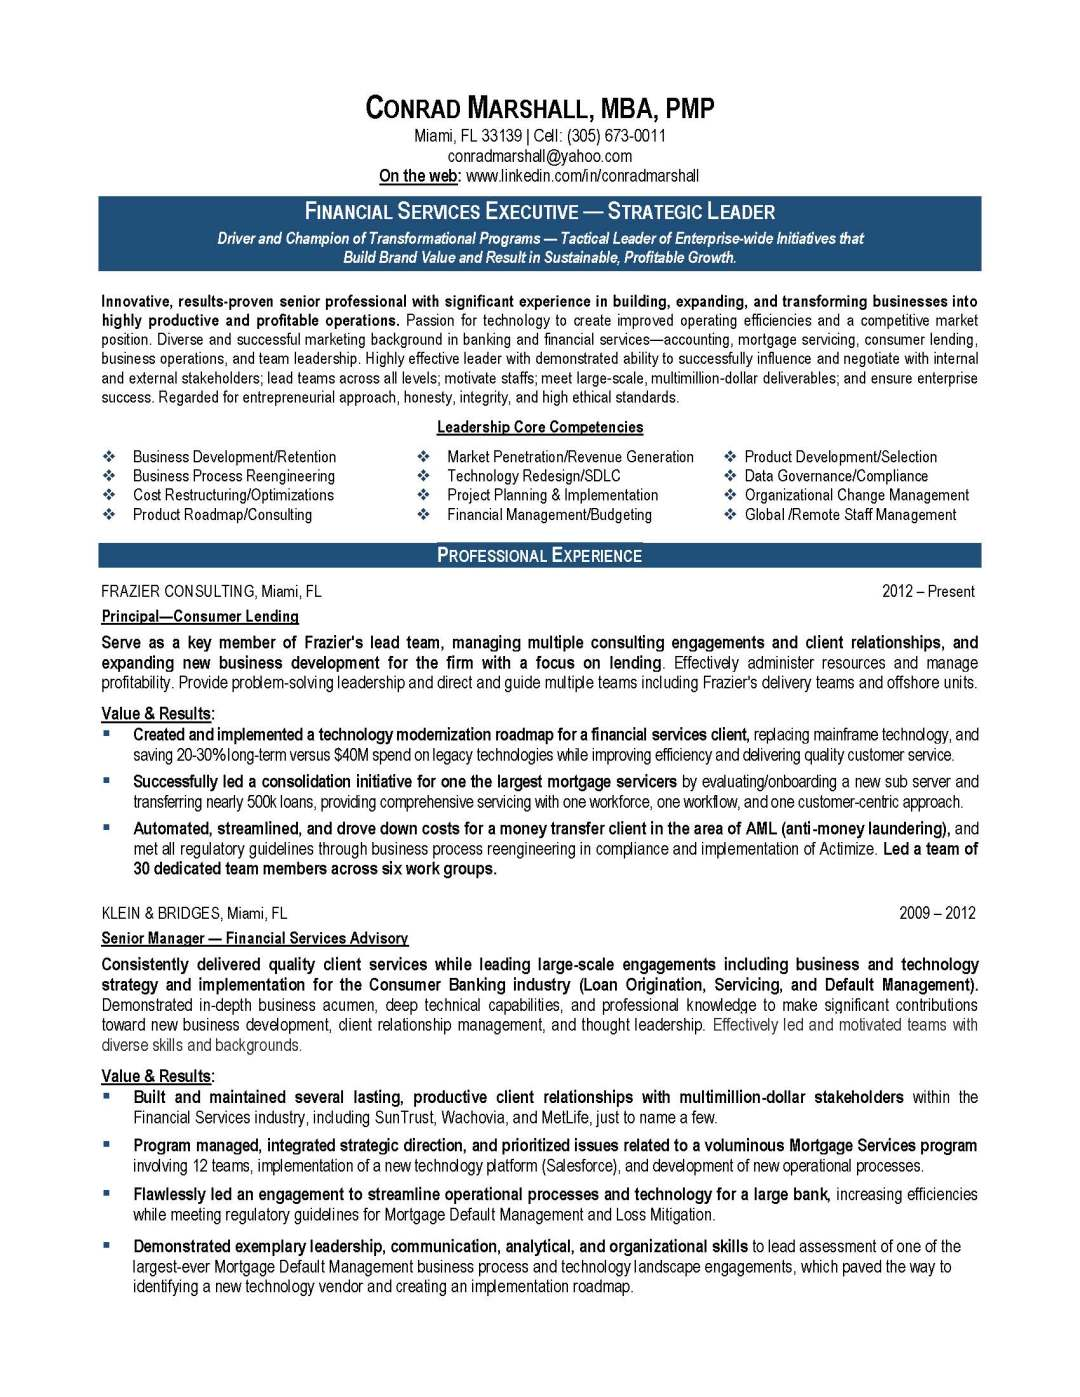 finance resume sample, provided by Elite Resume Writing Services